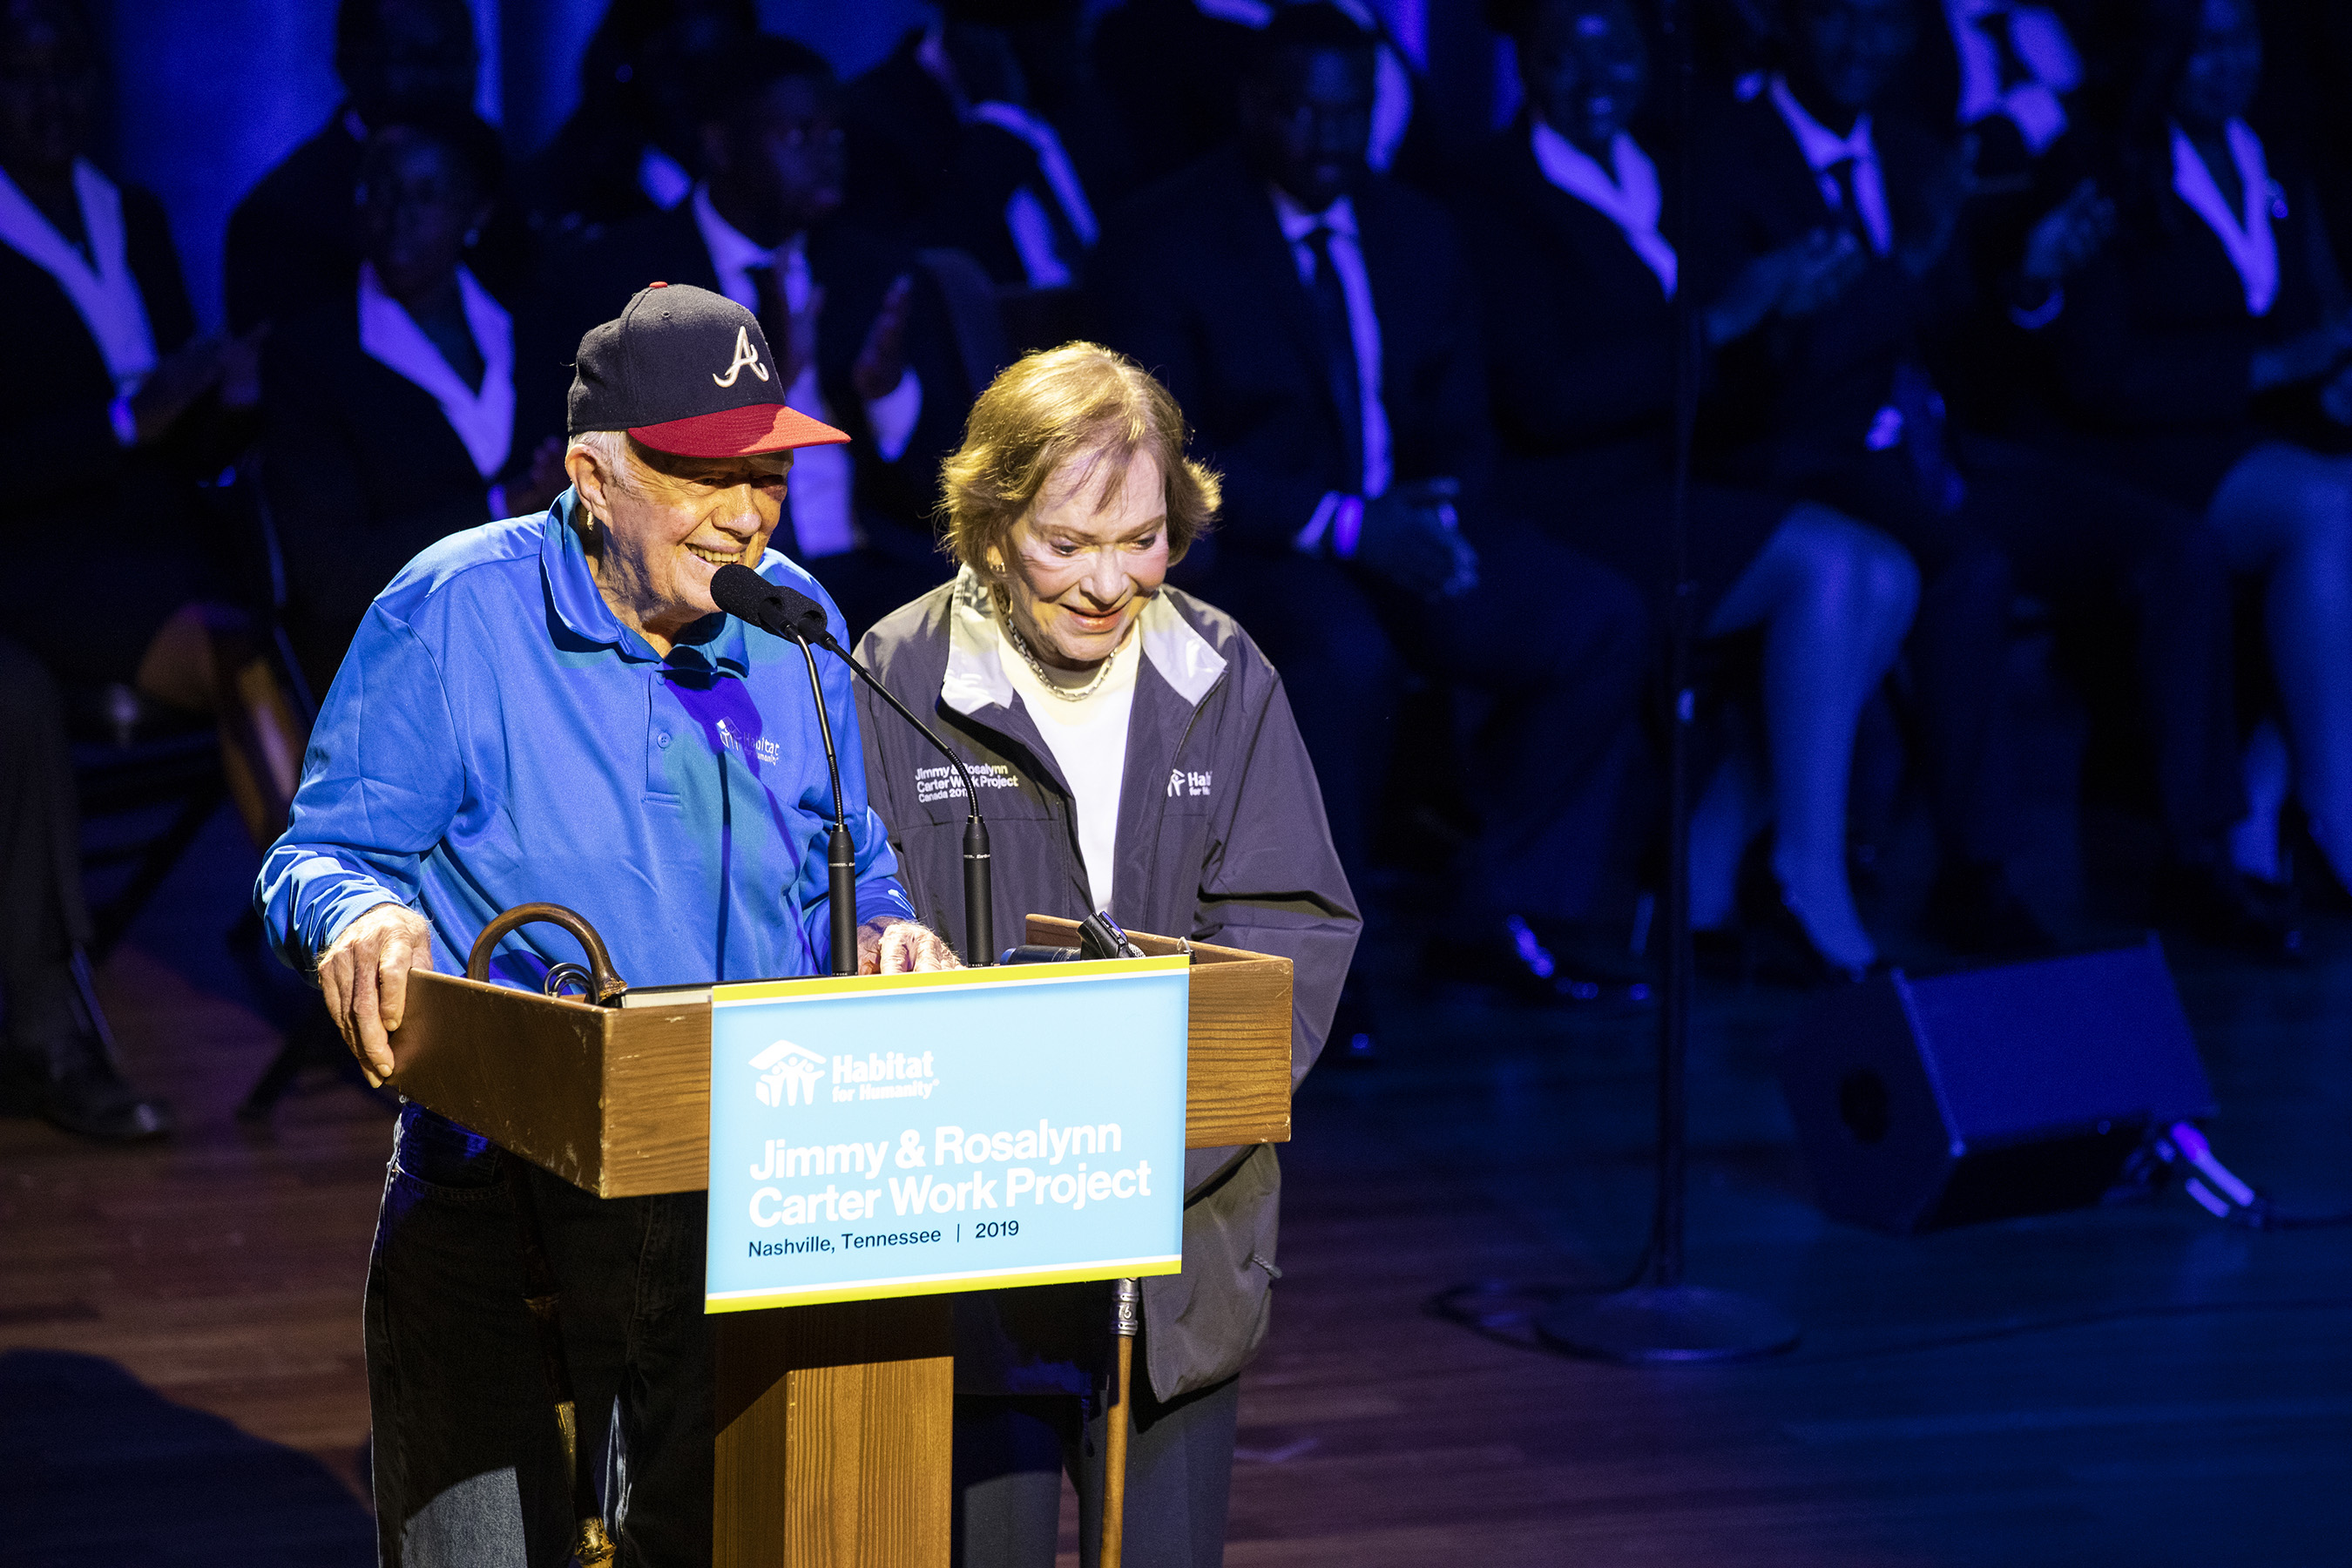 Former President Jimmy Carter and former First Lady Rosalynn Carter speak at the opening ceremony of the 36th Habitat for Humanity Jimmy & Rosalynn Carter Work Project in Nashville on Sunday, Oct. 6.